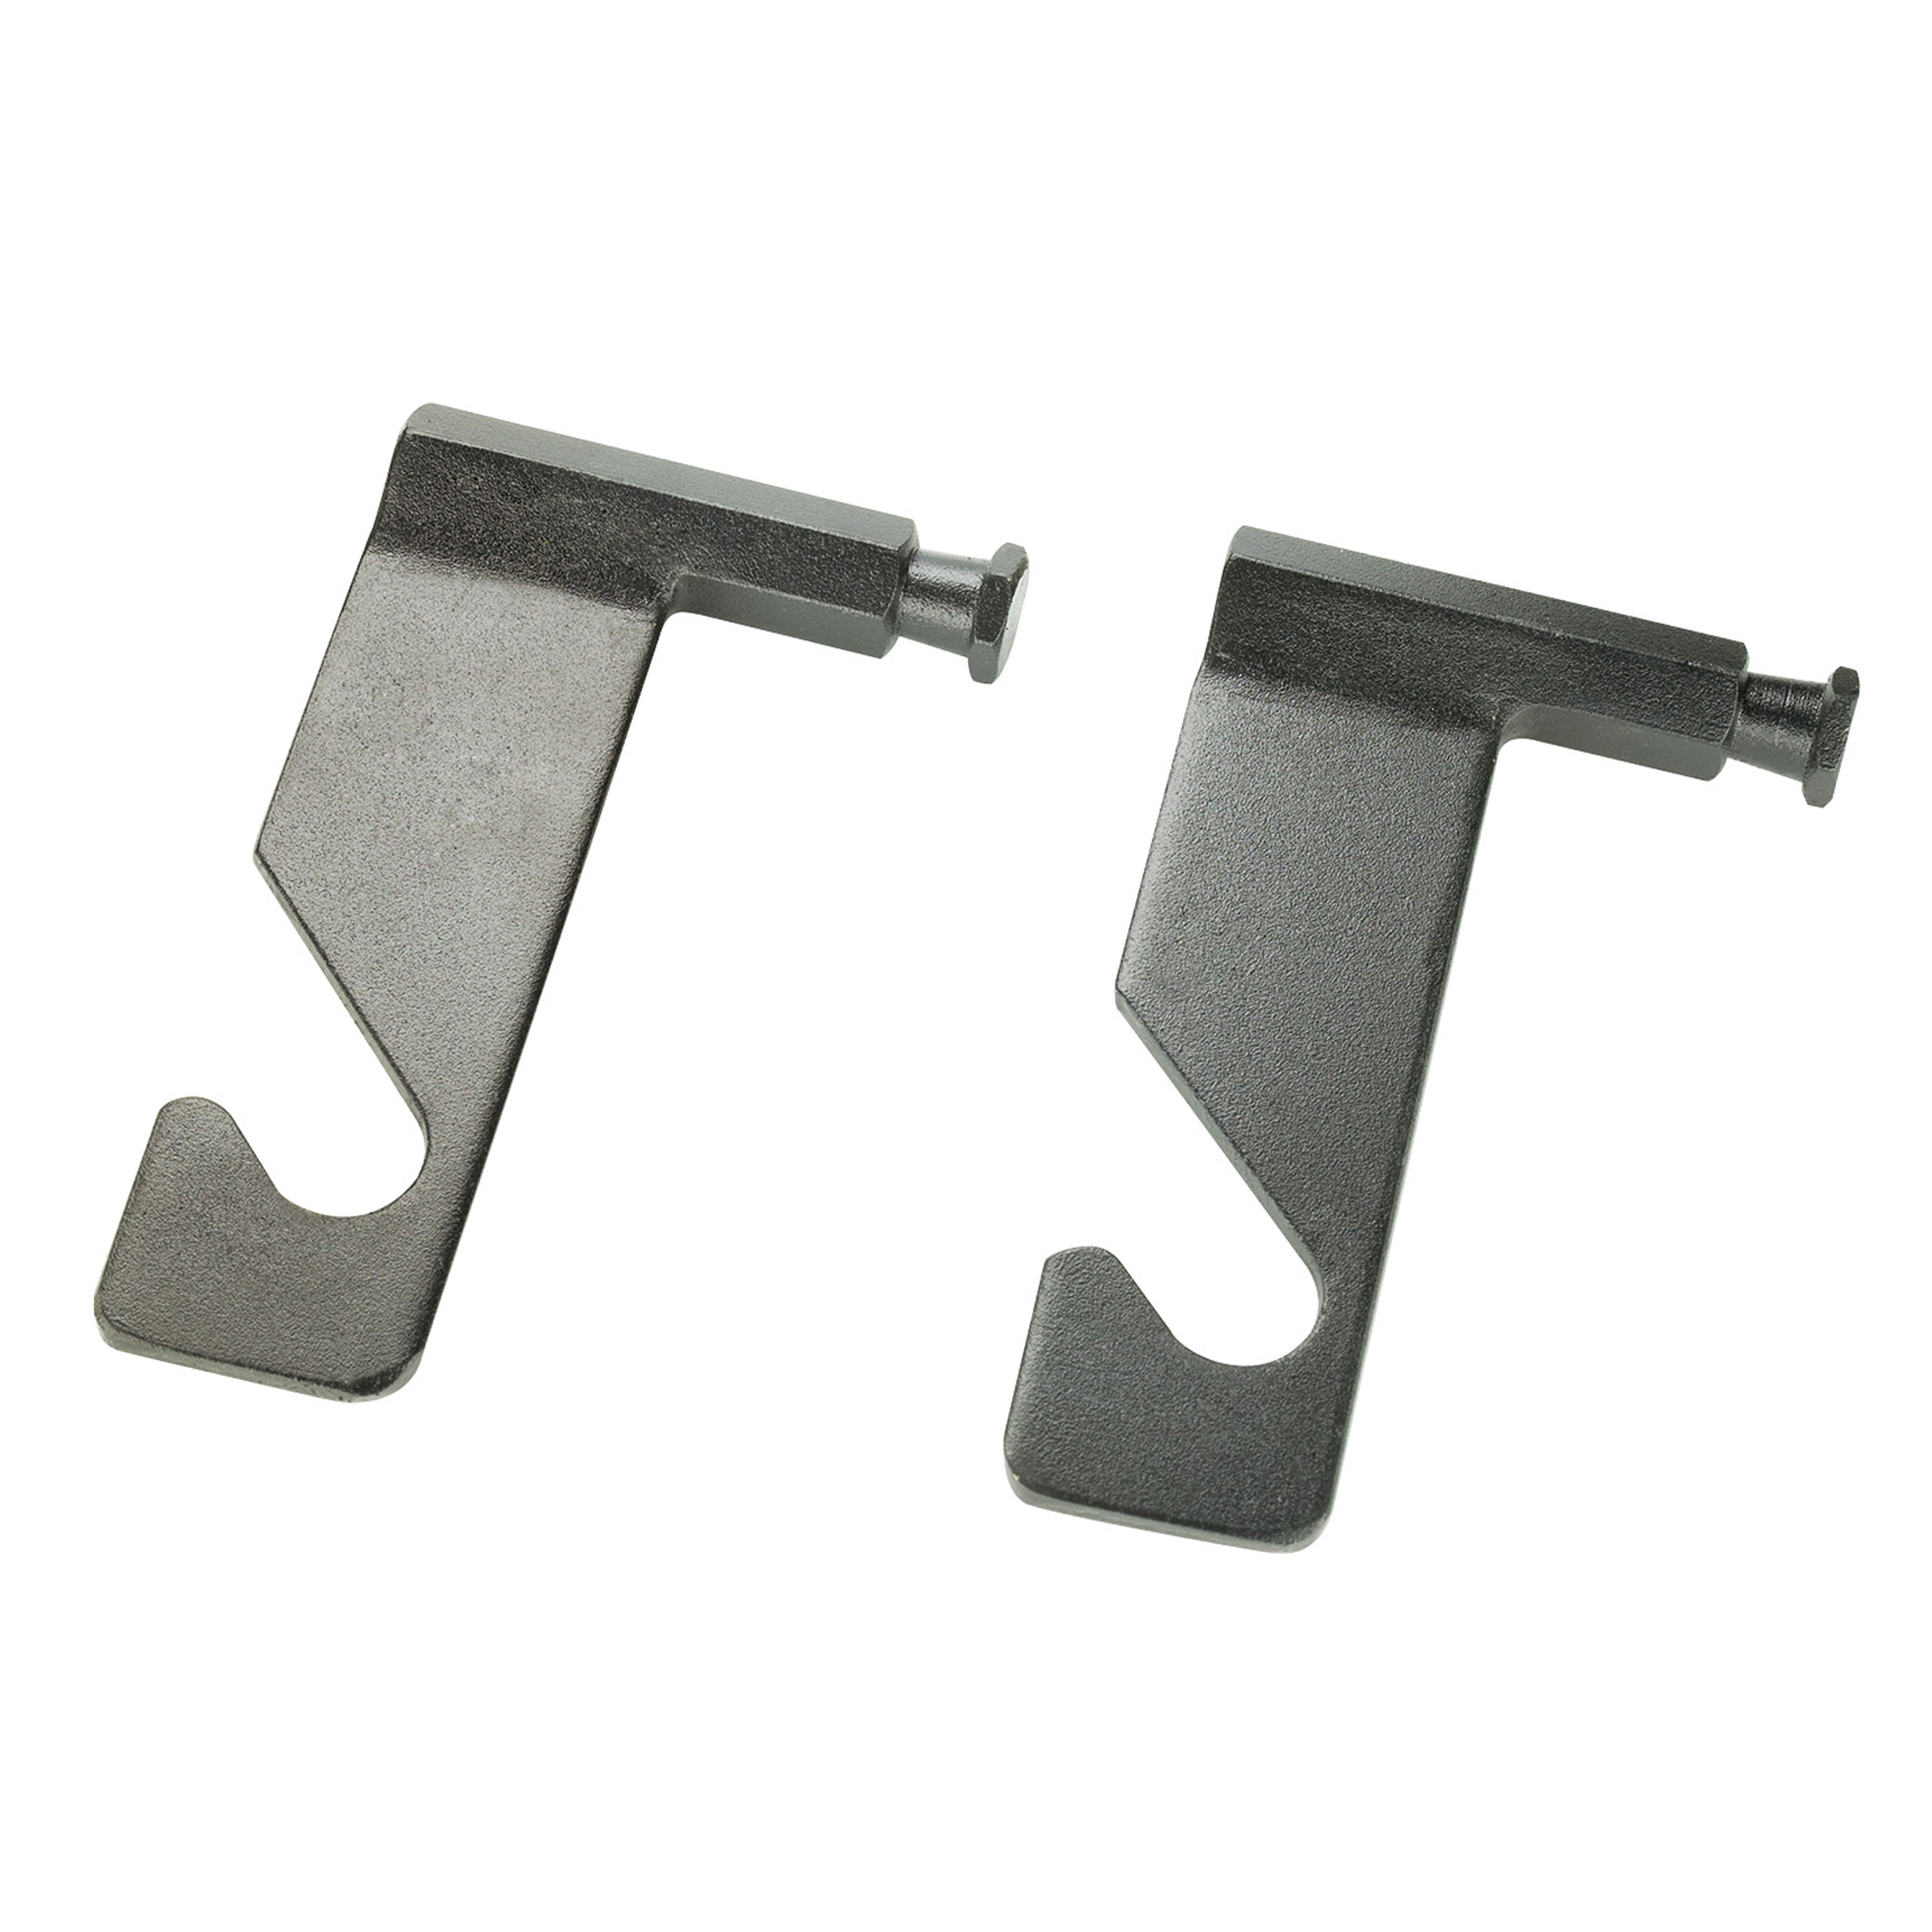 M11-012: Background Holder Hook & Hex Pin